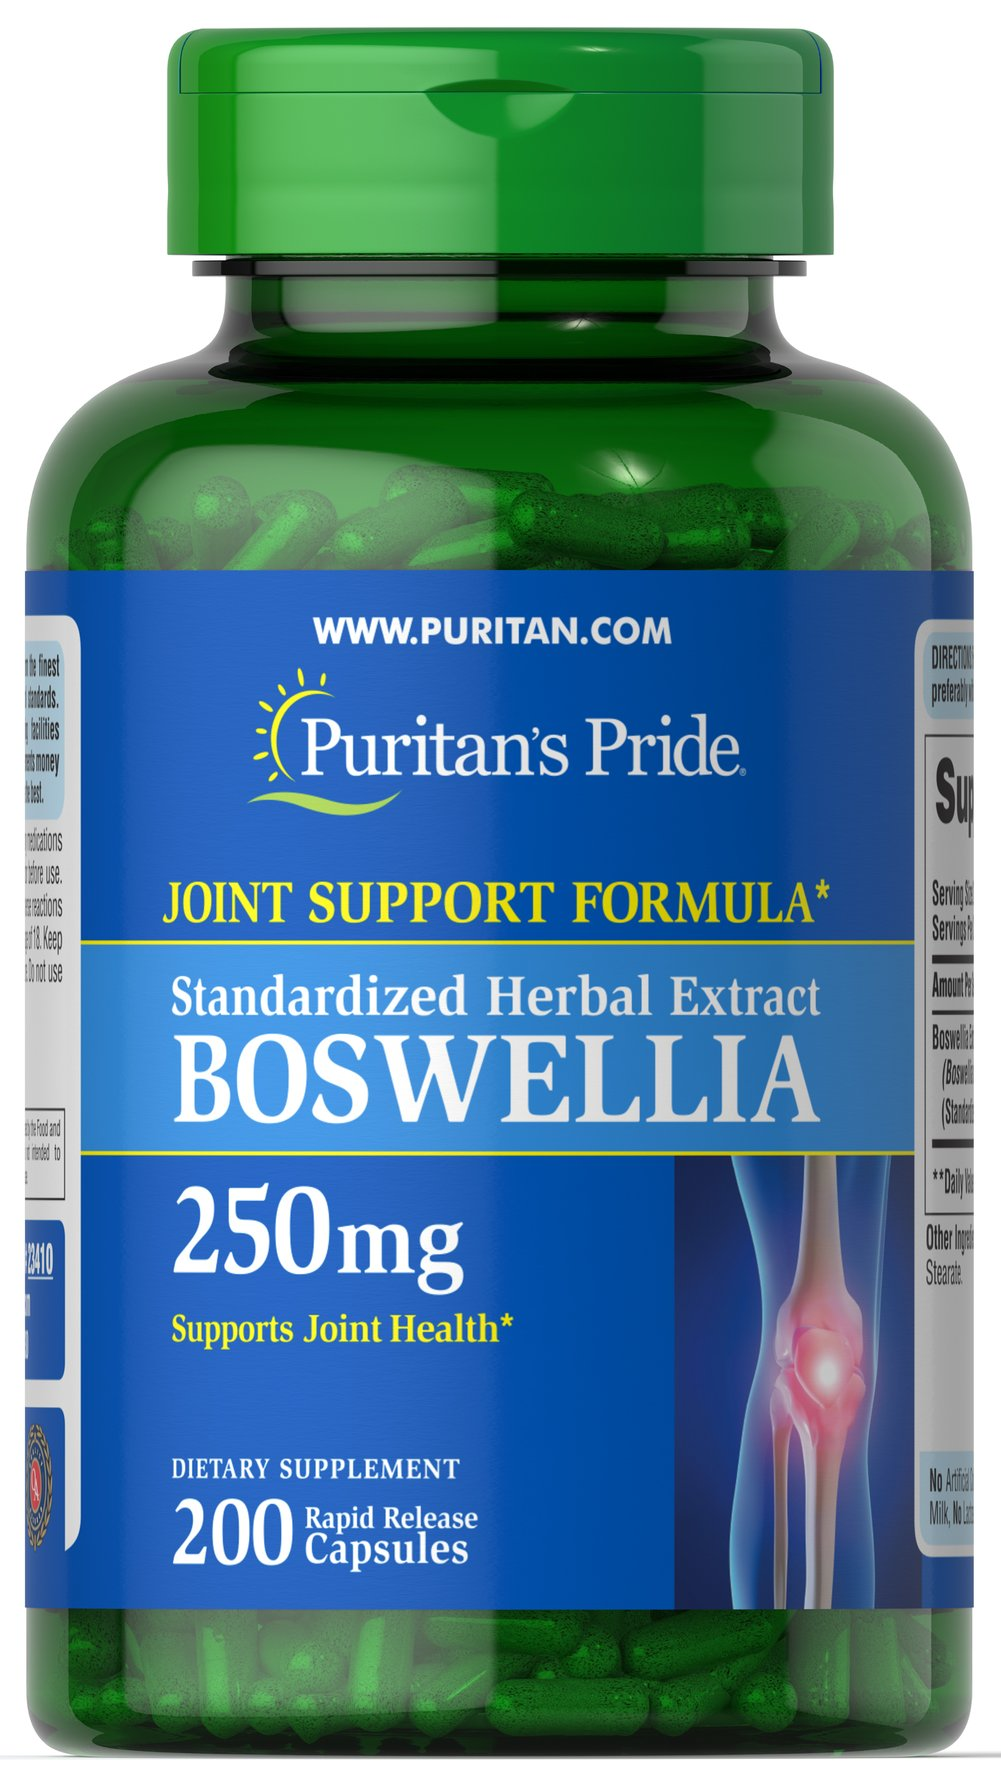 Boswellia Standardized Extract 250mg <p>Standardized to Contain 65% Boswellic Acid, 162.5 mg.</p><p><strong>Boswellia</strong> is a centuries old herb that helps support the structural health of cartilage.**</p> 200 Capsules 250 mg $35.99